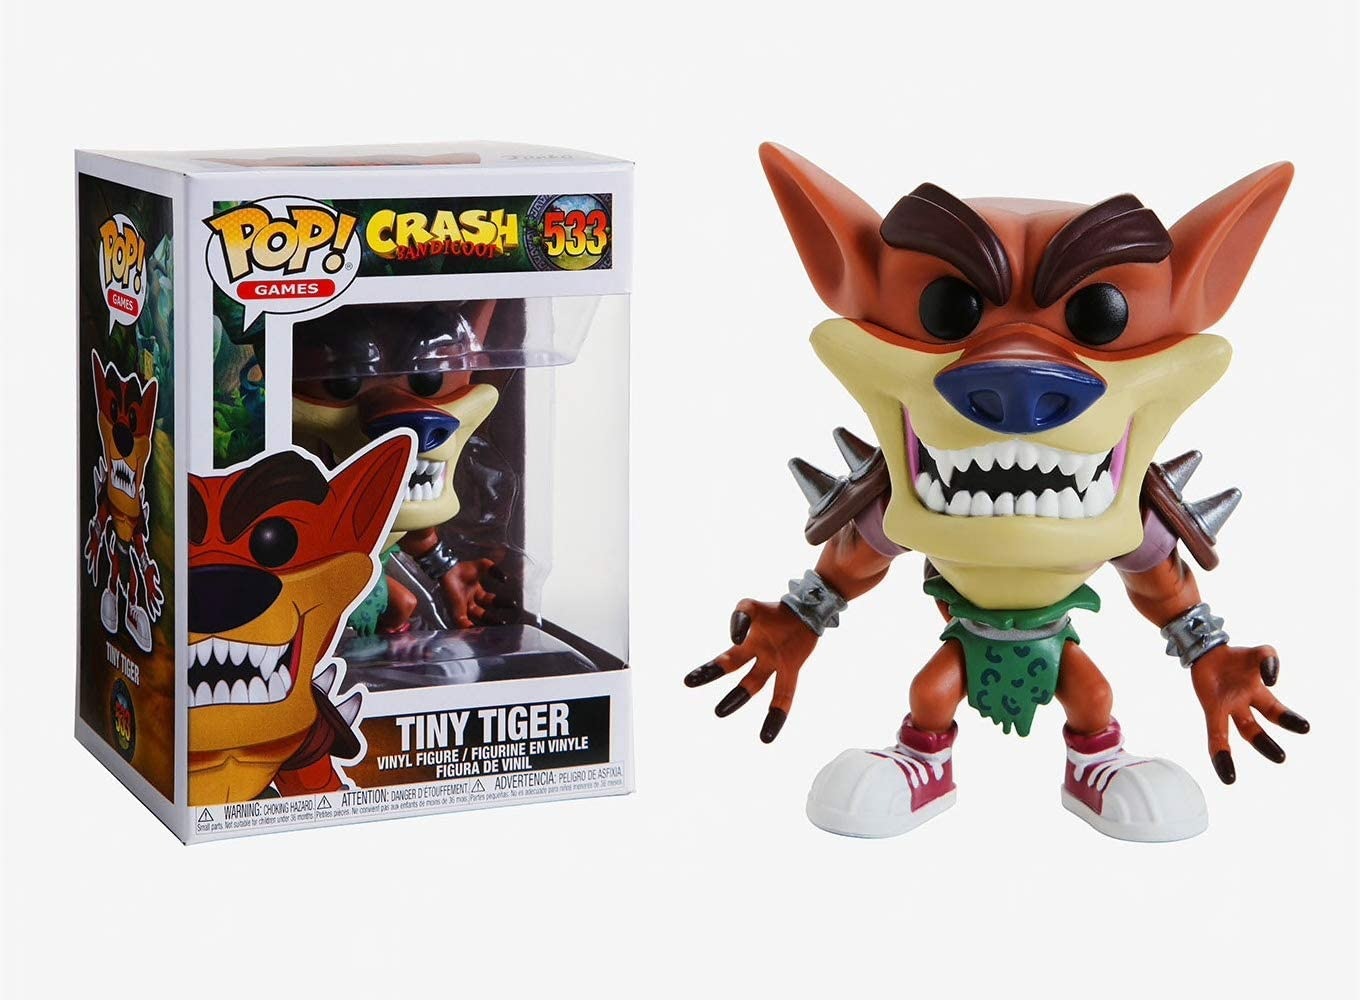 FUNKO POP! CRASH BANDICOOT - TINY TIGER # 533